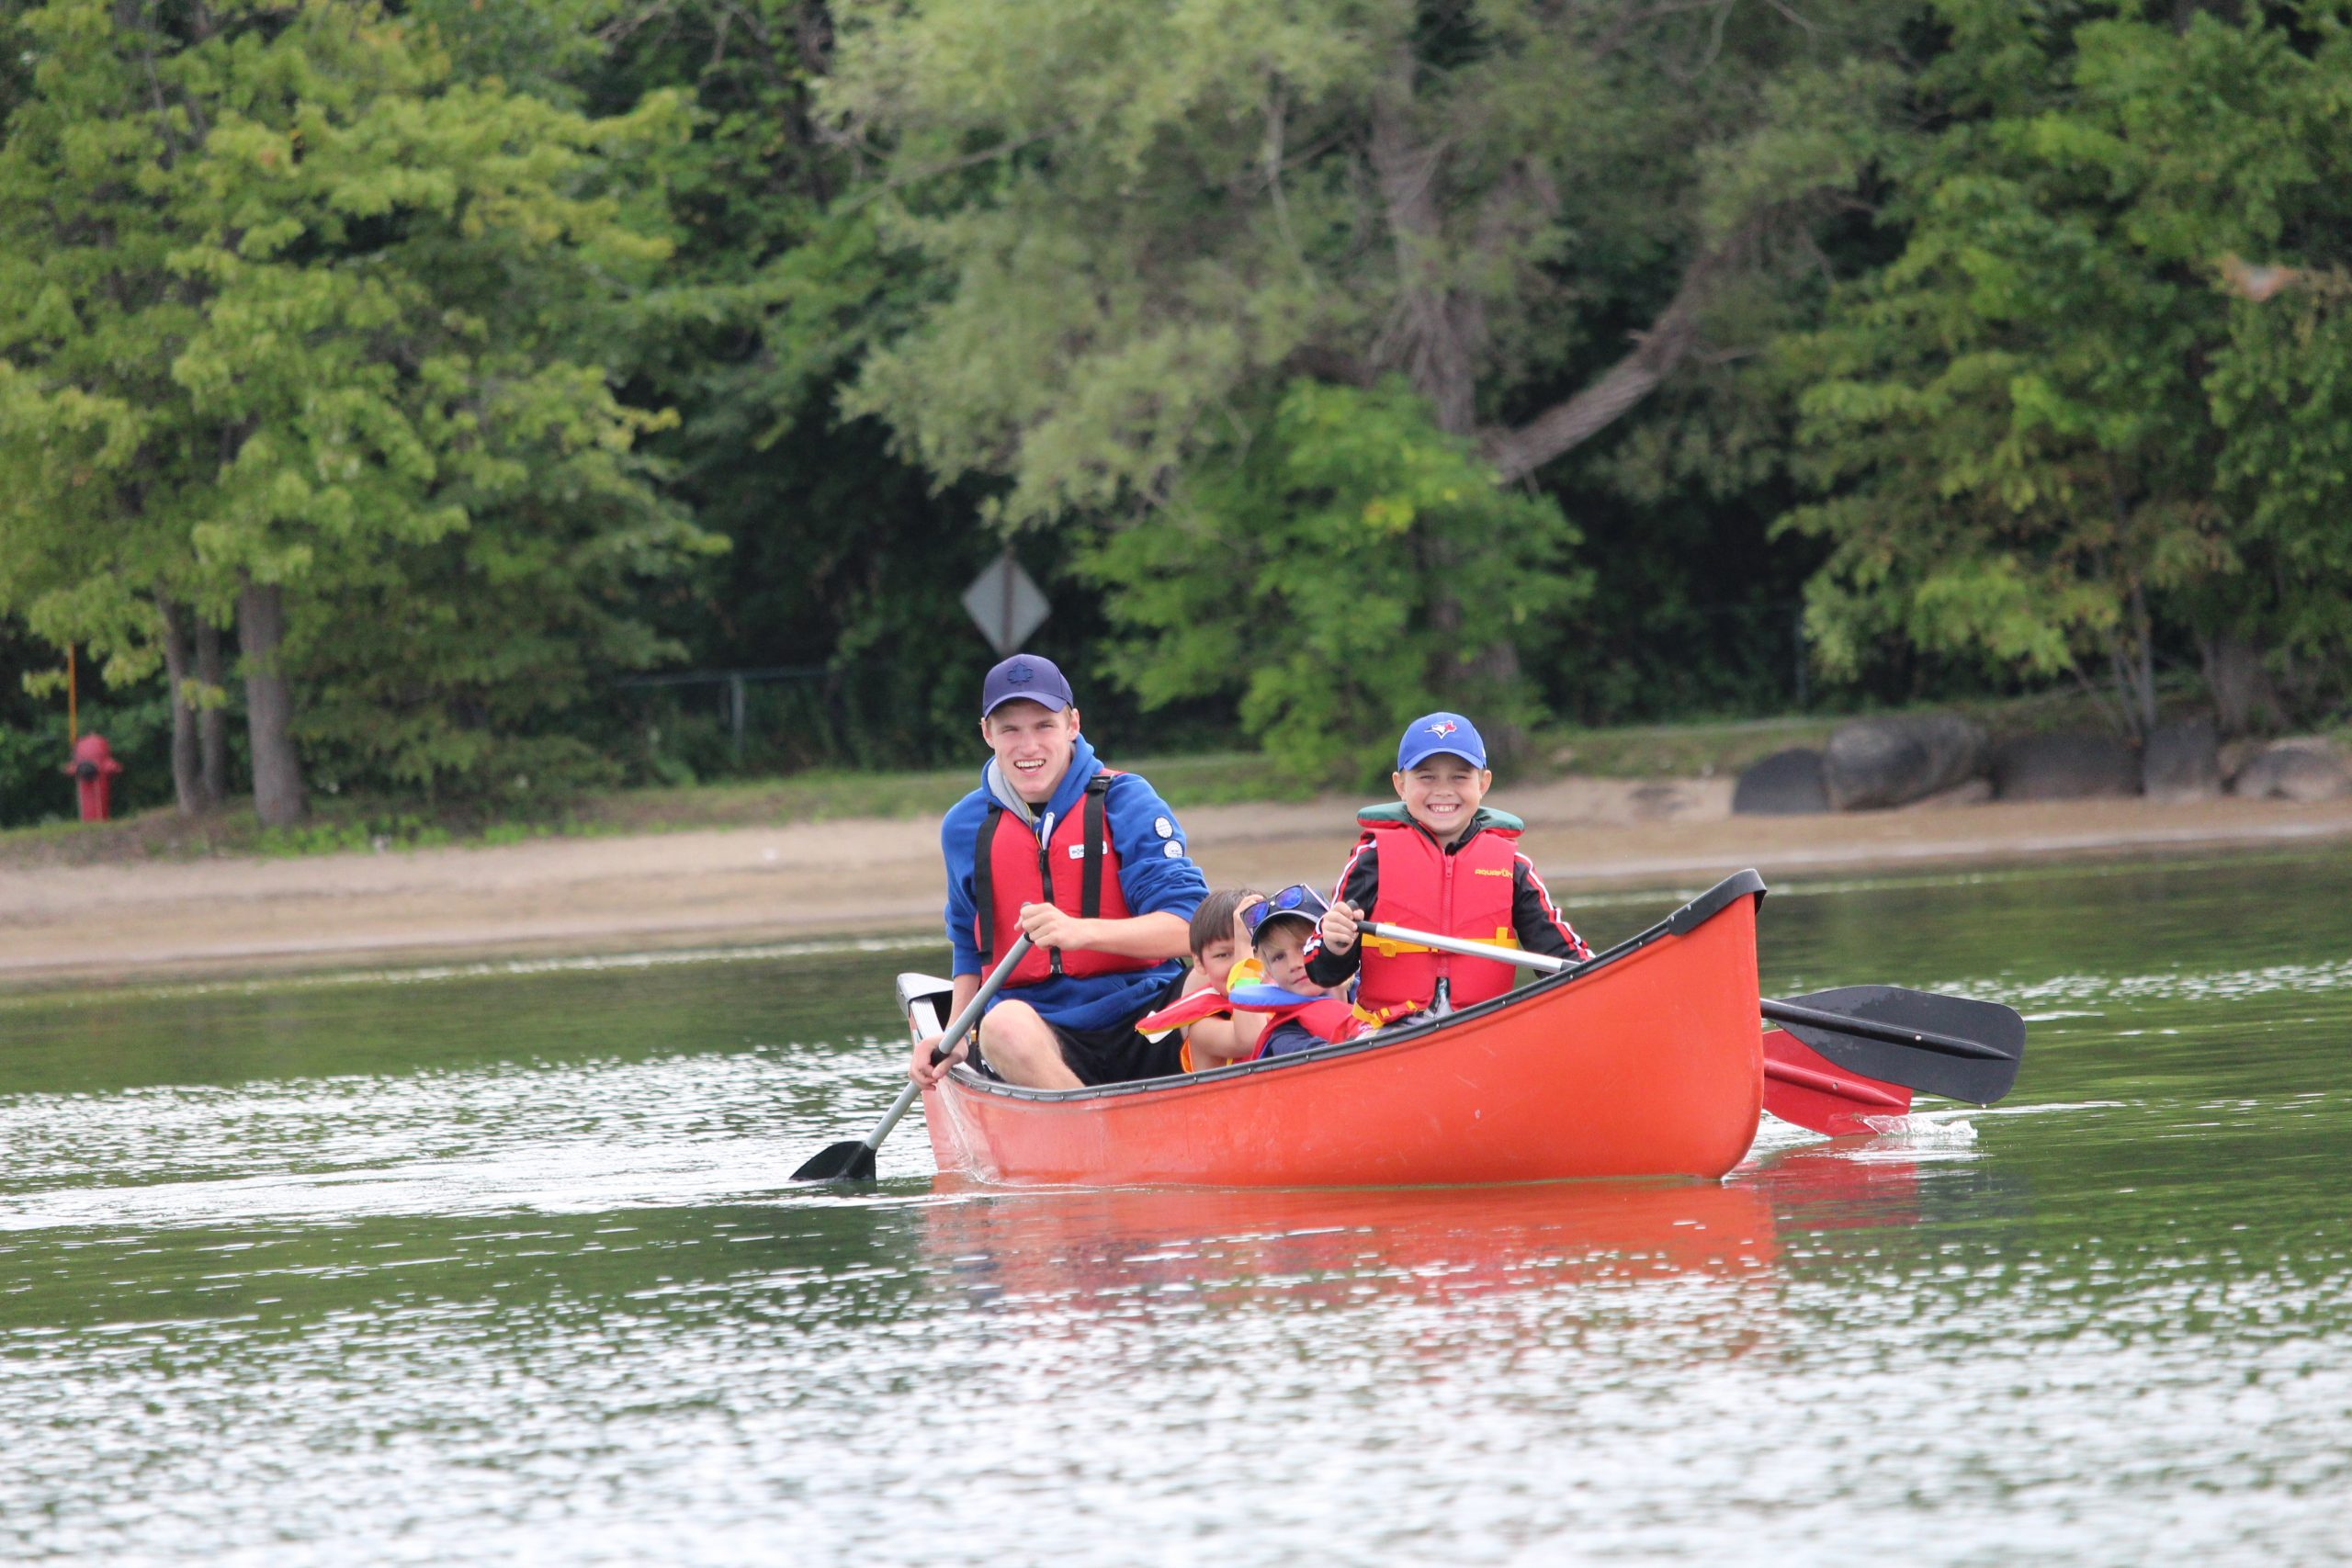 Boys canoeing